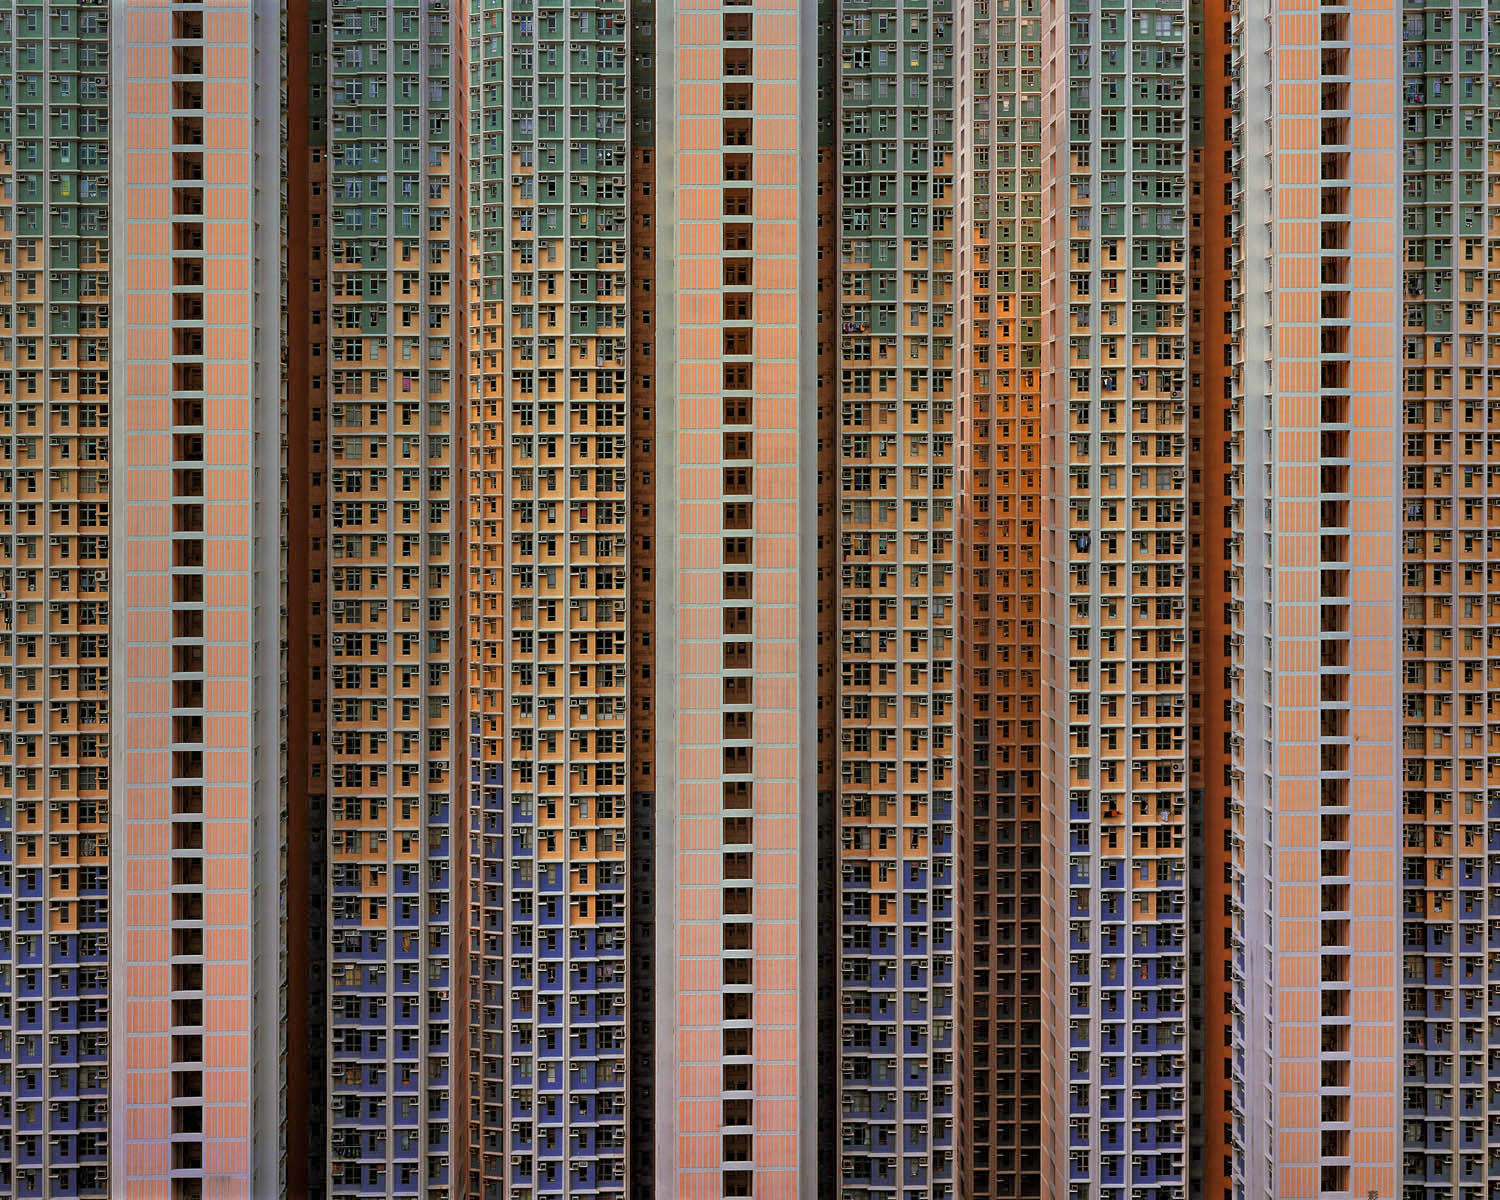 """'Architecture of Density #91"""", Hong Kong 2006, 40 x 52"""" Edition 9 of 9 (Blue Lotus Gallery)"""